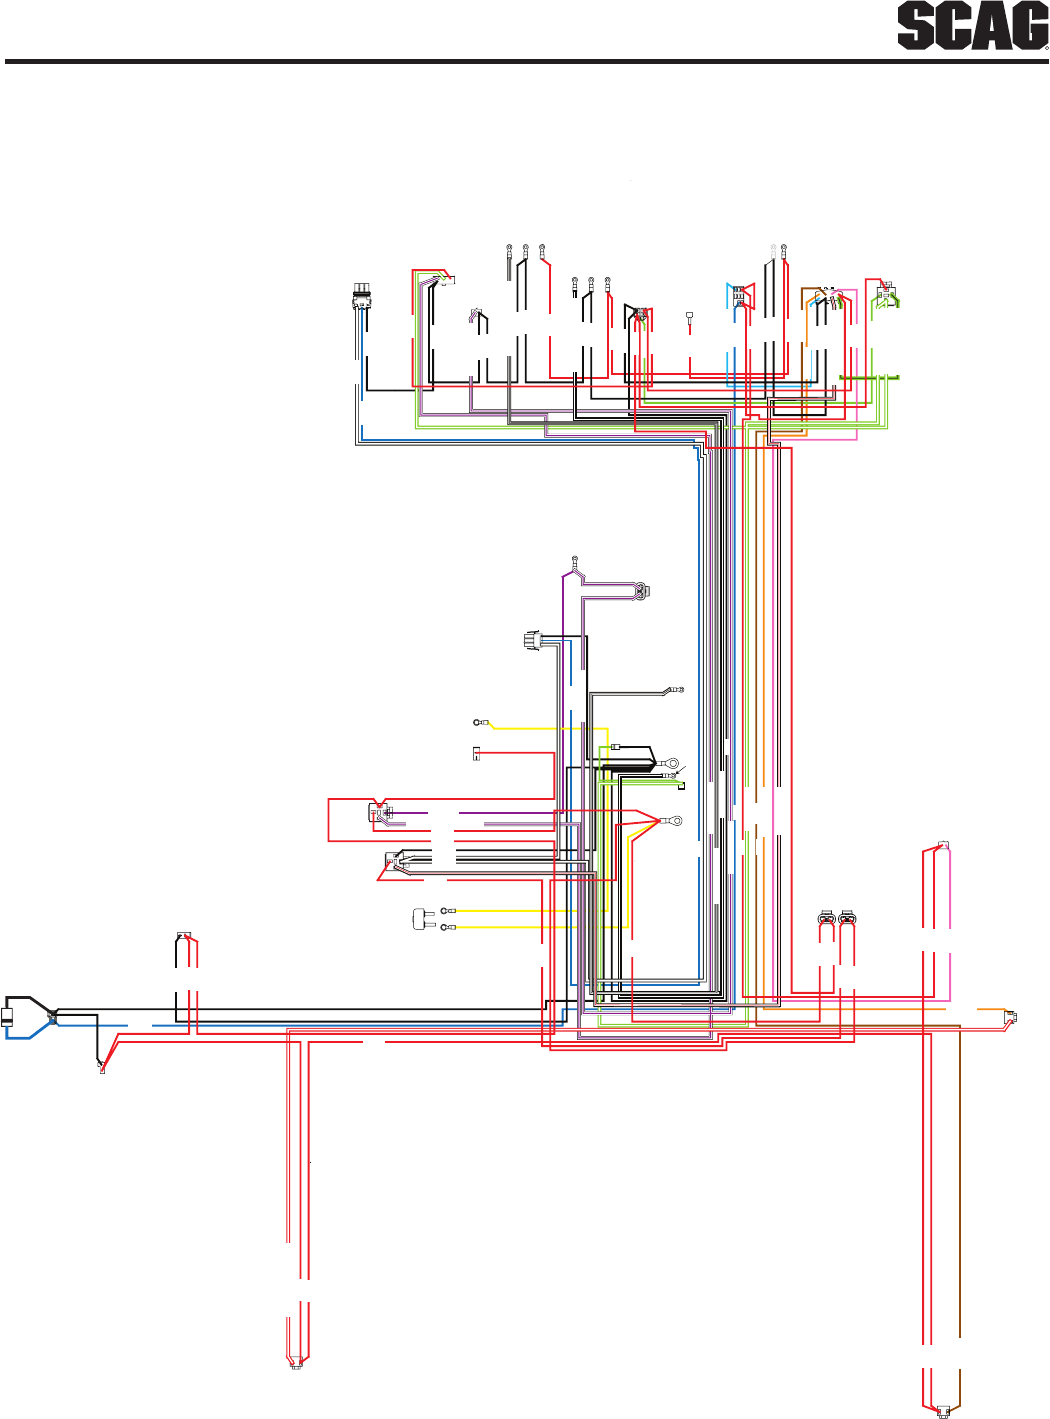 hight resolution of scag fuse box wiring diagram todaysscag fuse box wiring library circuit box scag fuse box